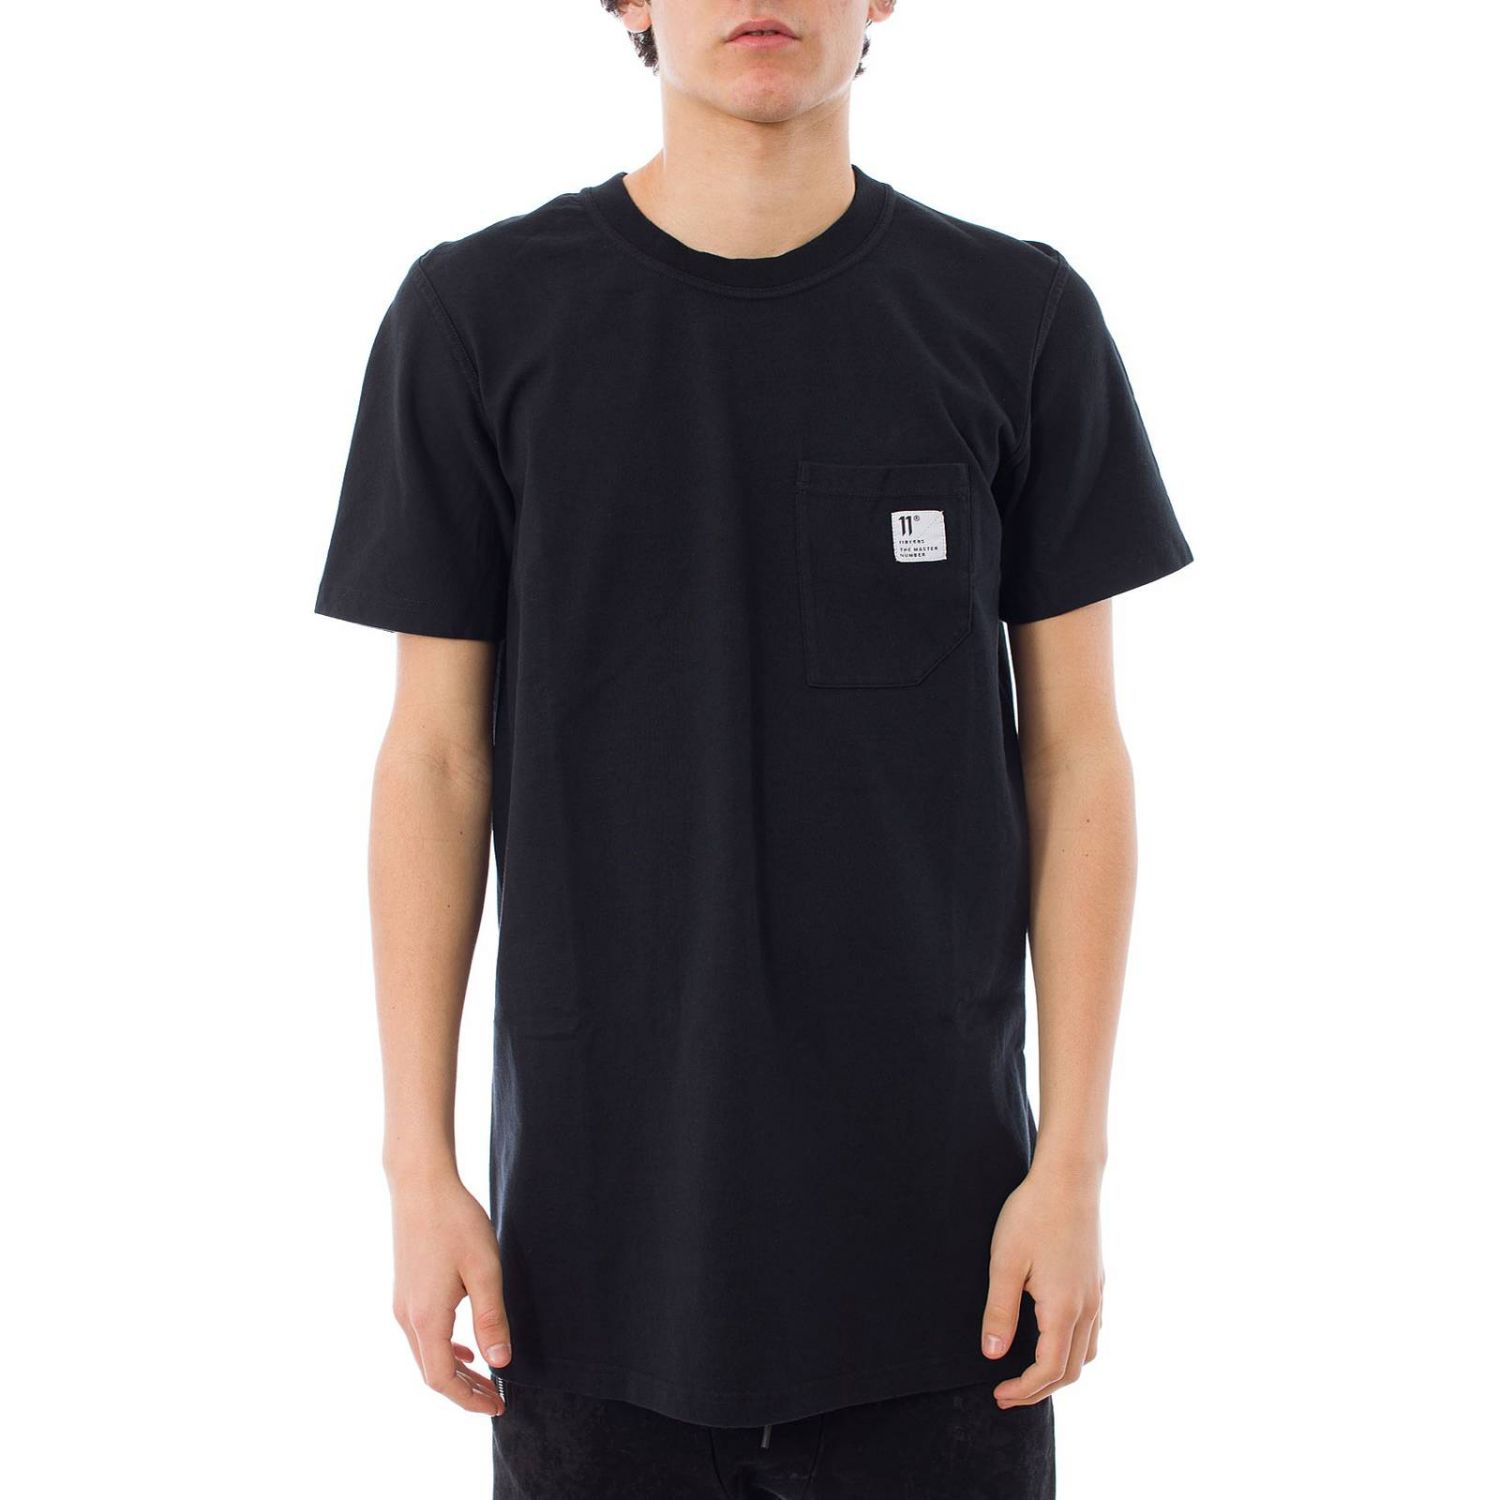 T-shirt T-shirt Men 11 By Boris Bidjan Saberi